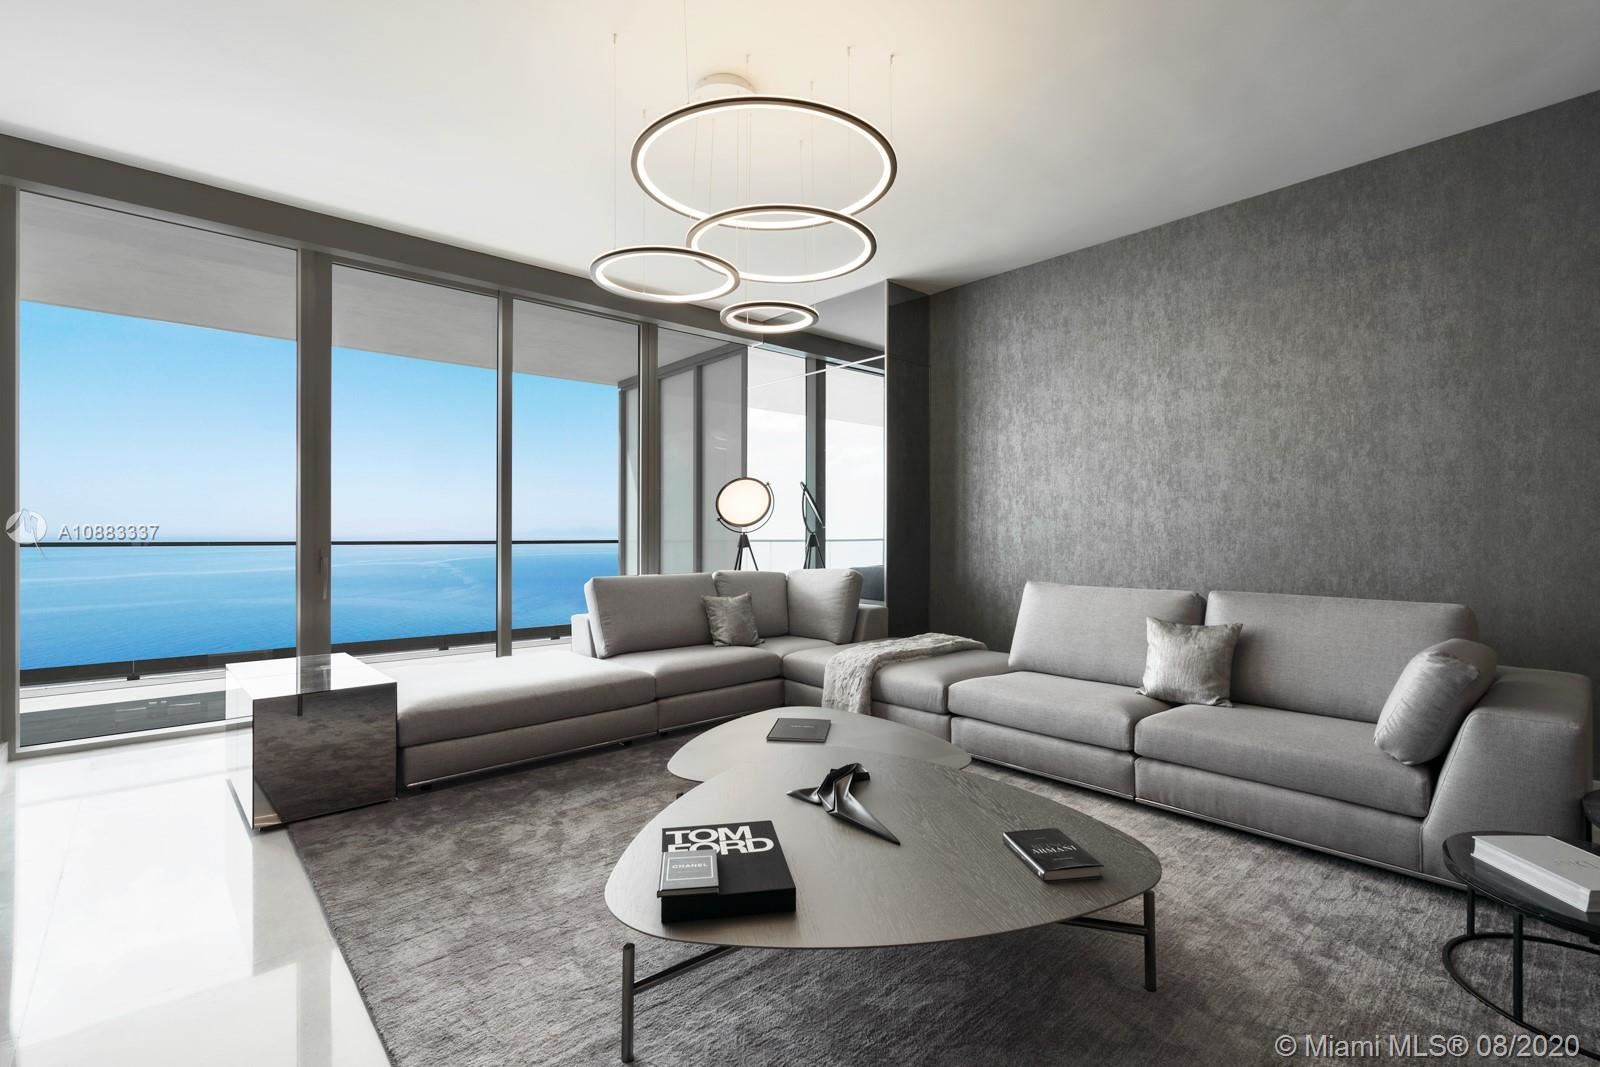 18975 Collins Ave #4202, Sunny Isles, FL 33160 - #: A10883337